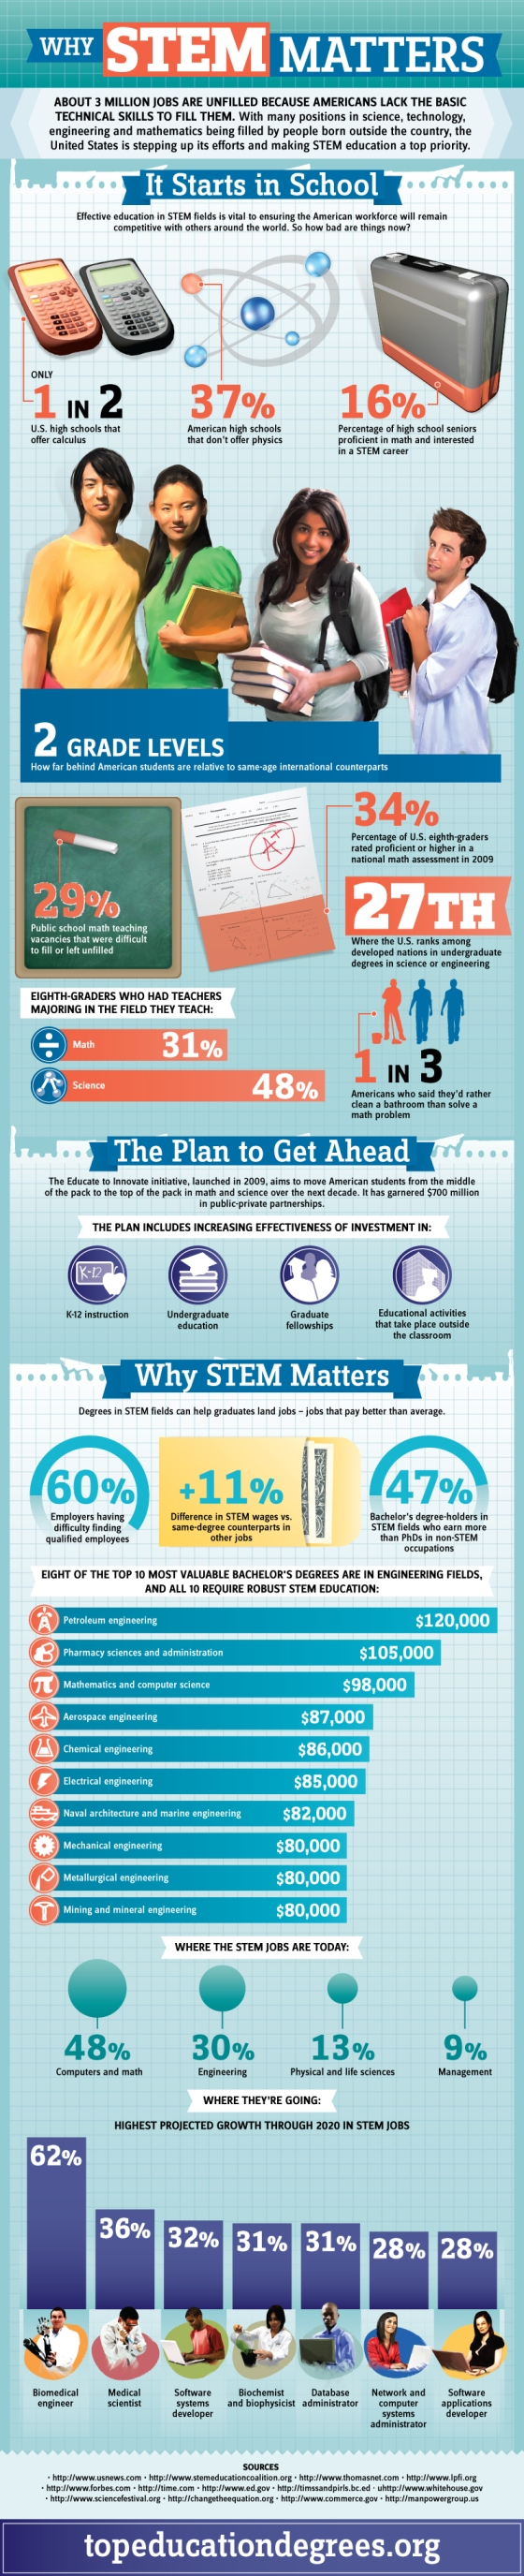 Why STEM Matters